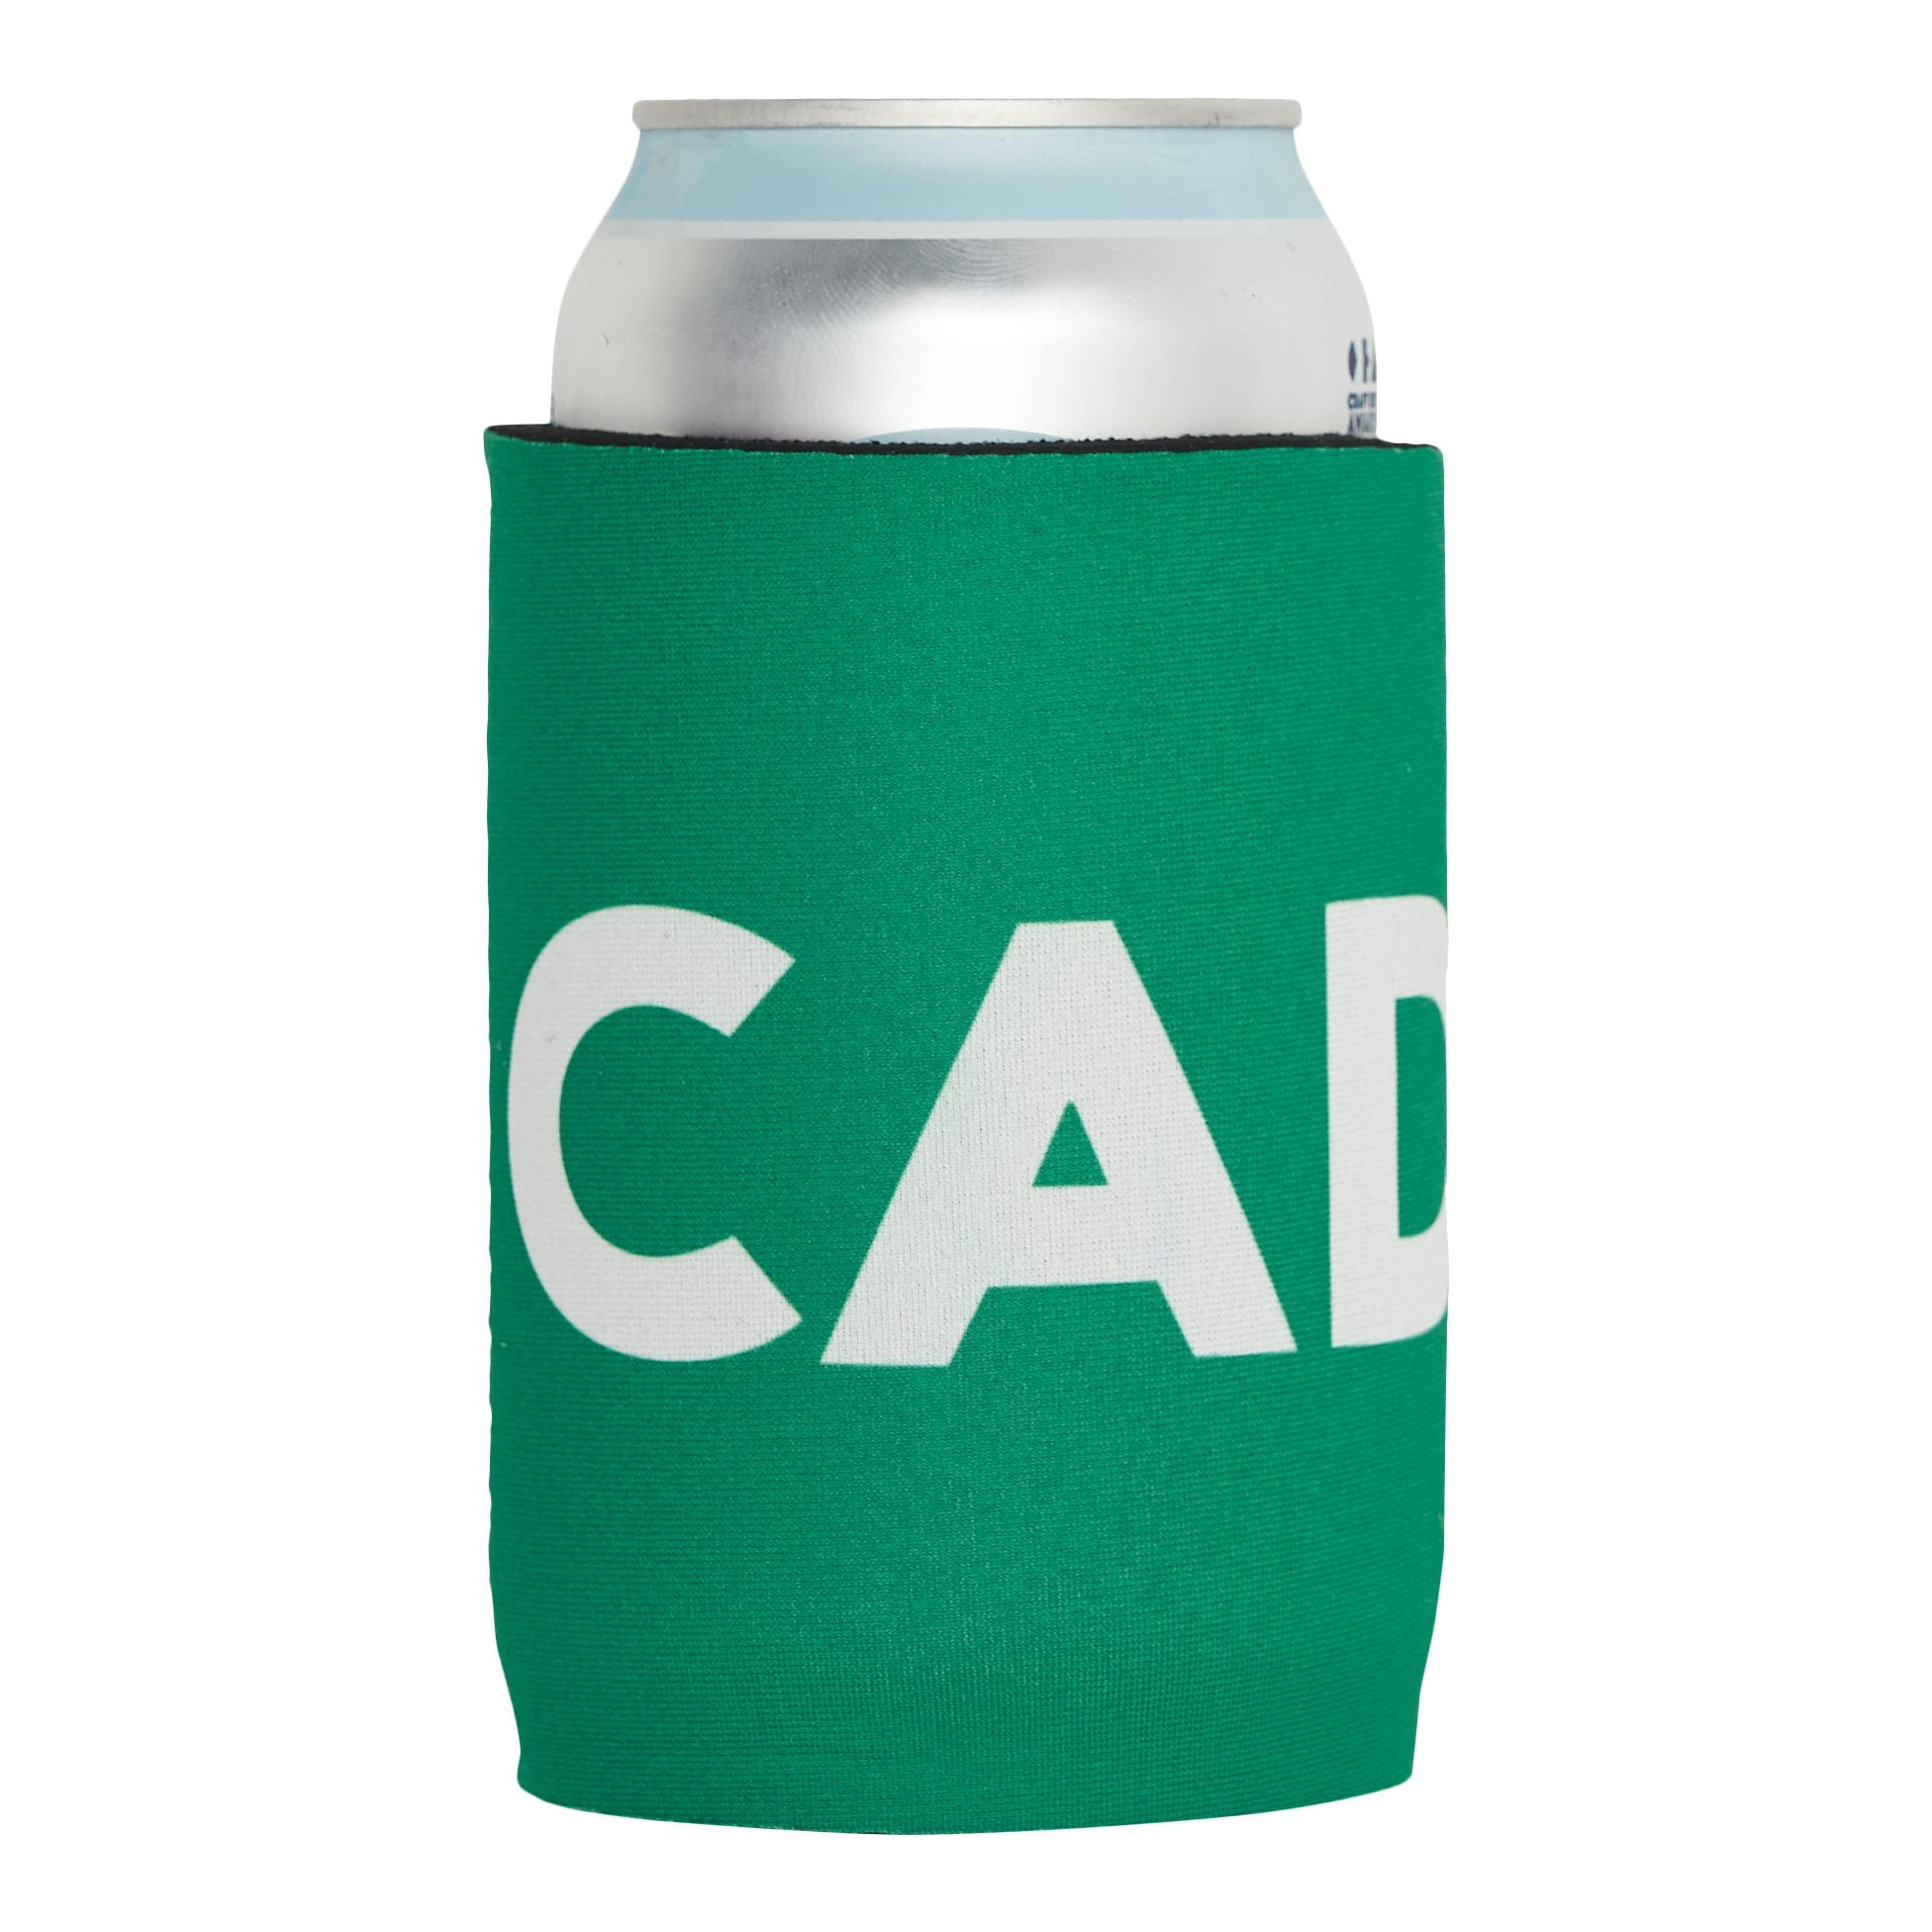 birds-of-condor-green-caddy-golf-beer-koozie-stubby-cooler